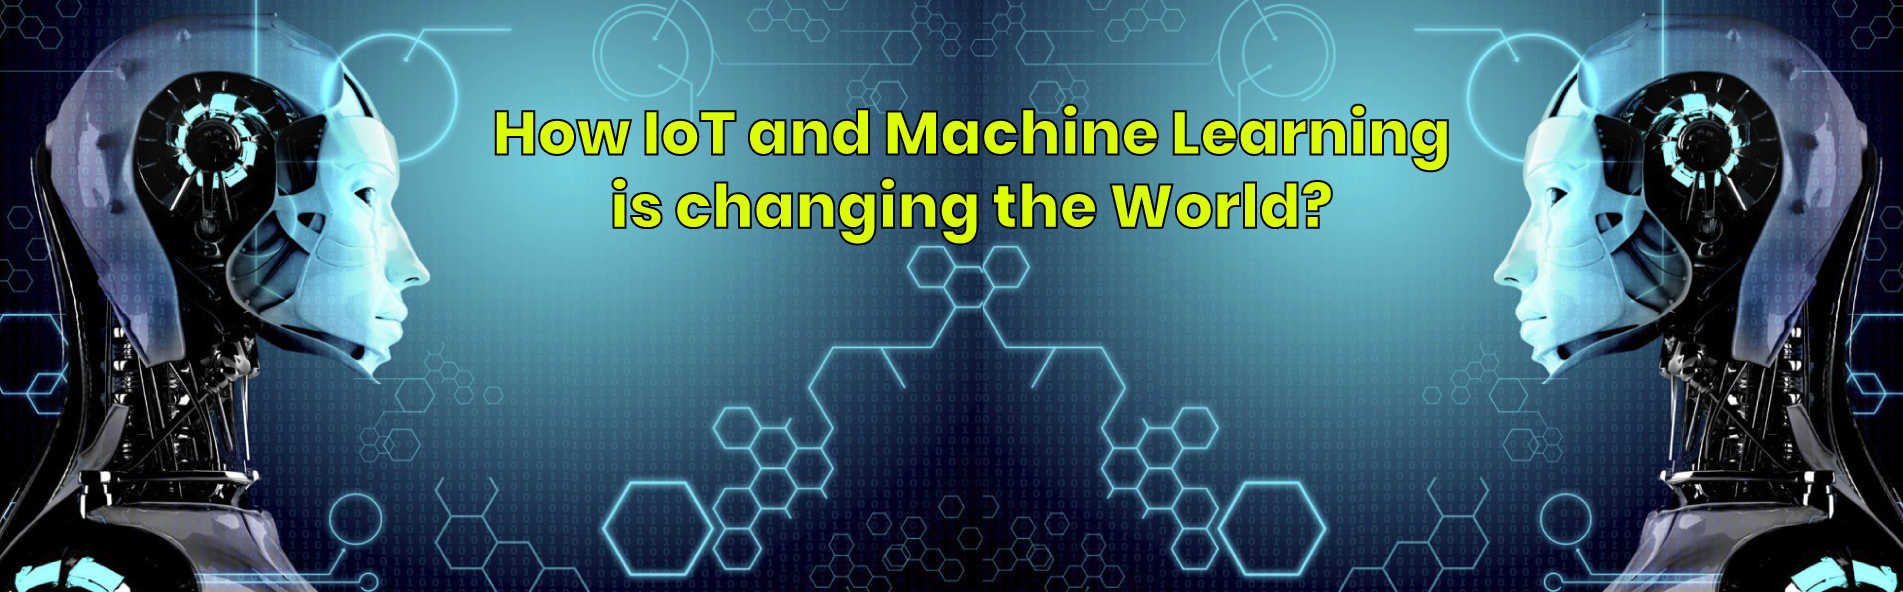 How IoT and Machine Learning is Changing the World?